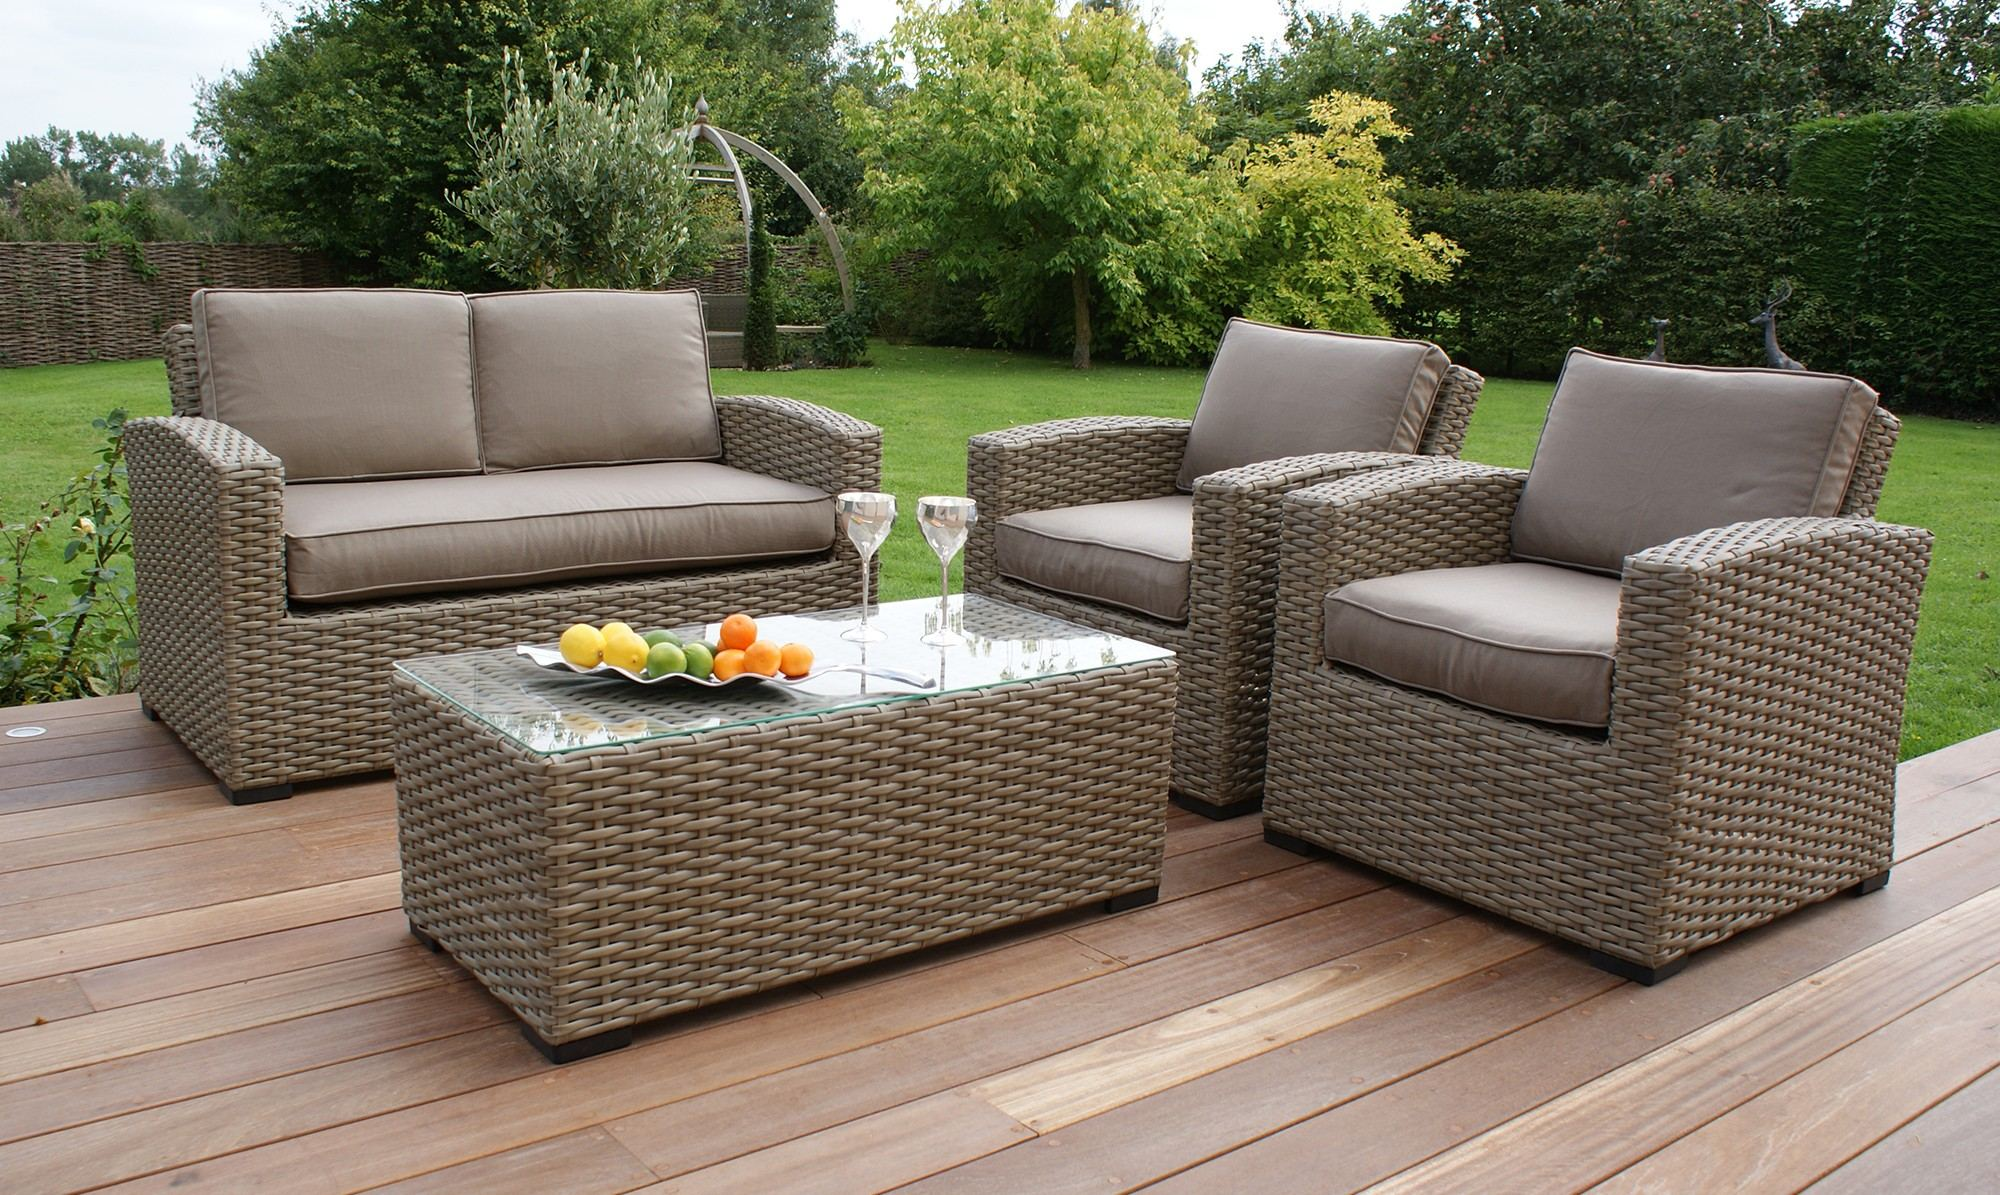 Rattan Garden Sofa Set Uk